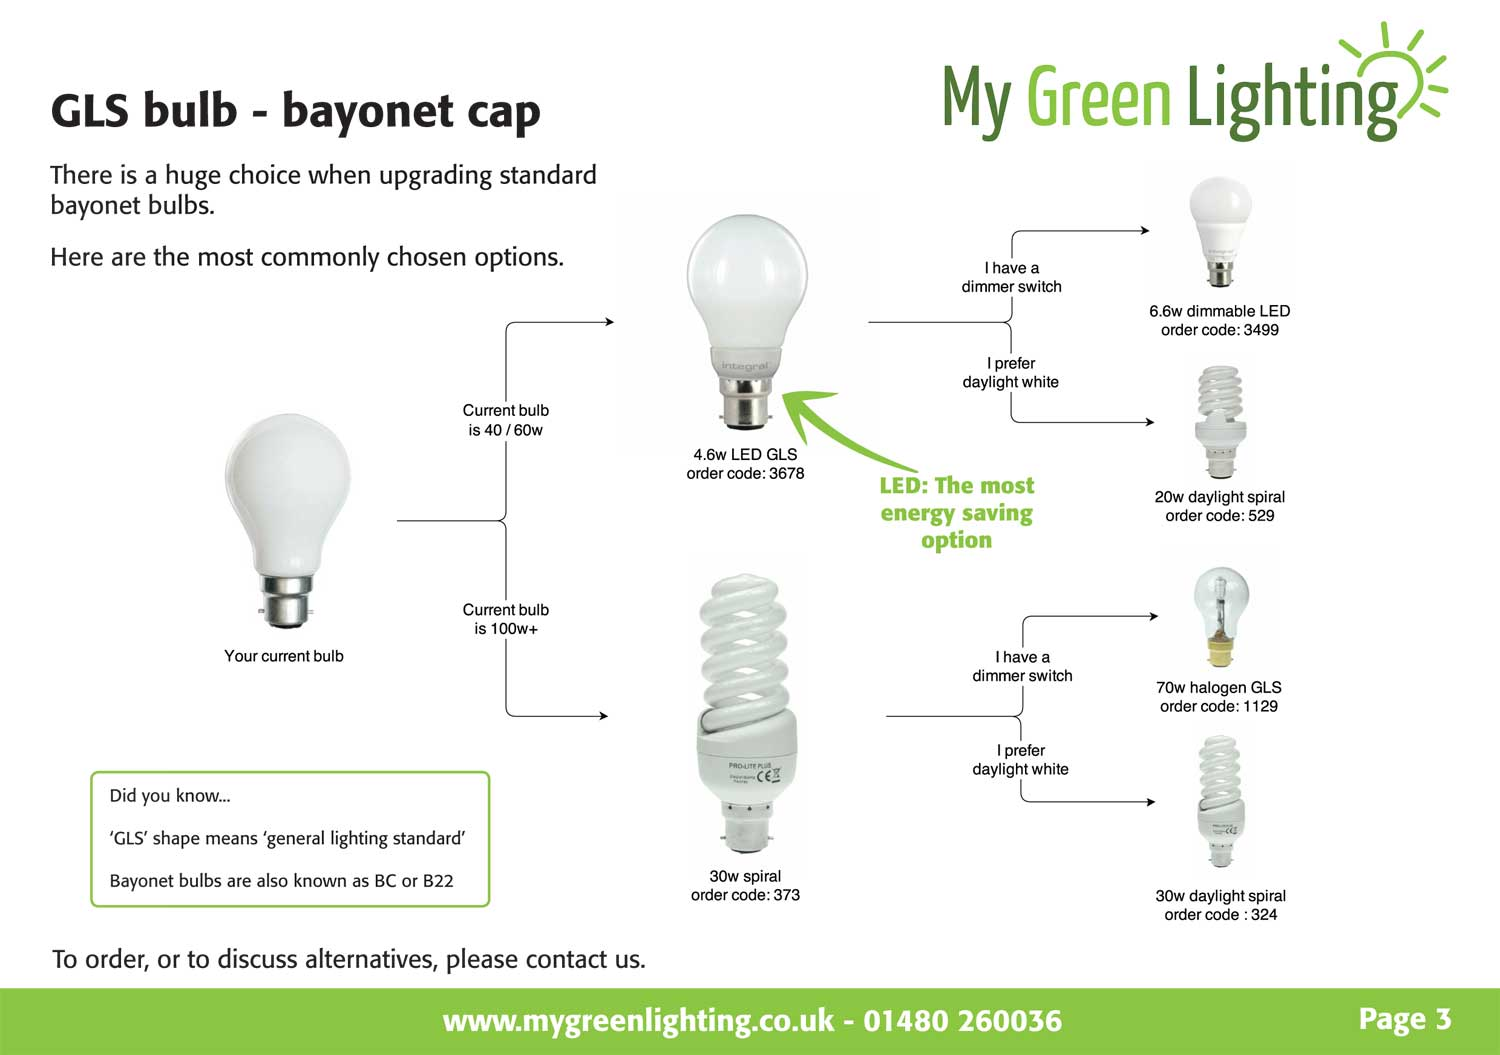 GLS bayonet bulbs from the Simple Energy Saving Guide to replacing common household bulbs